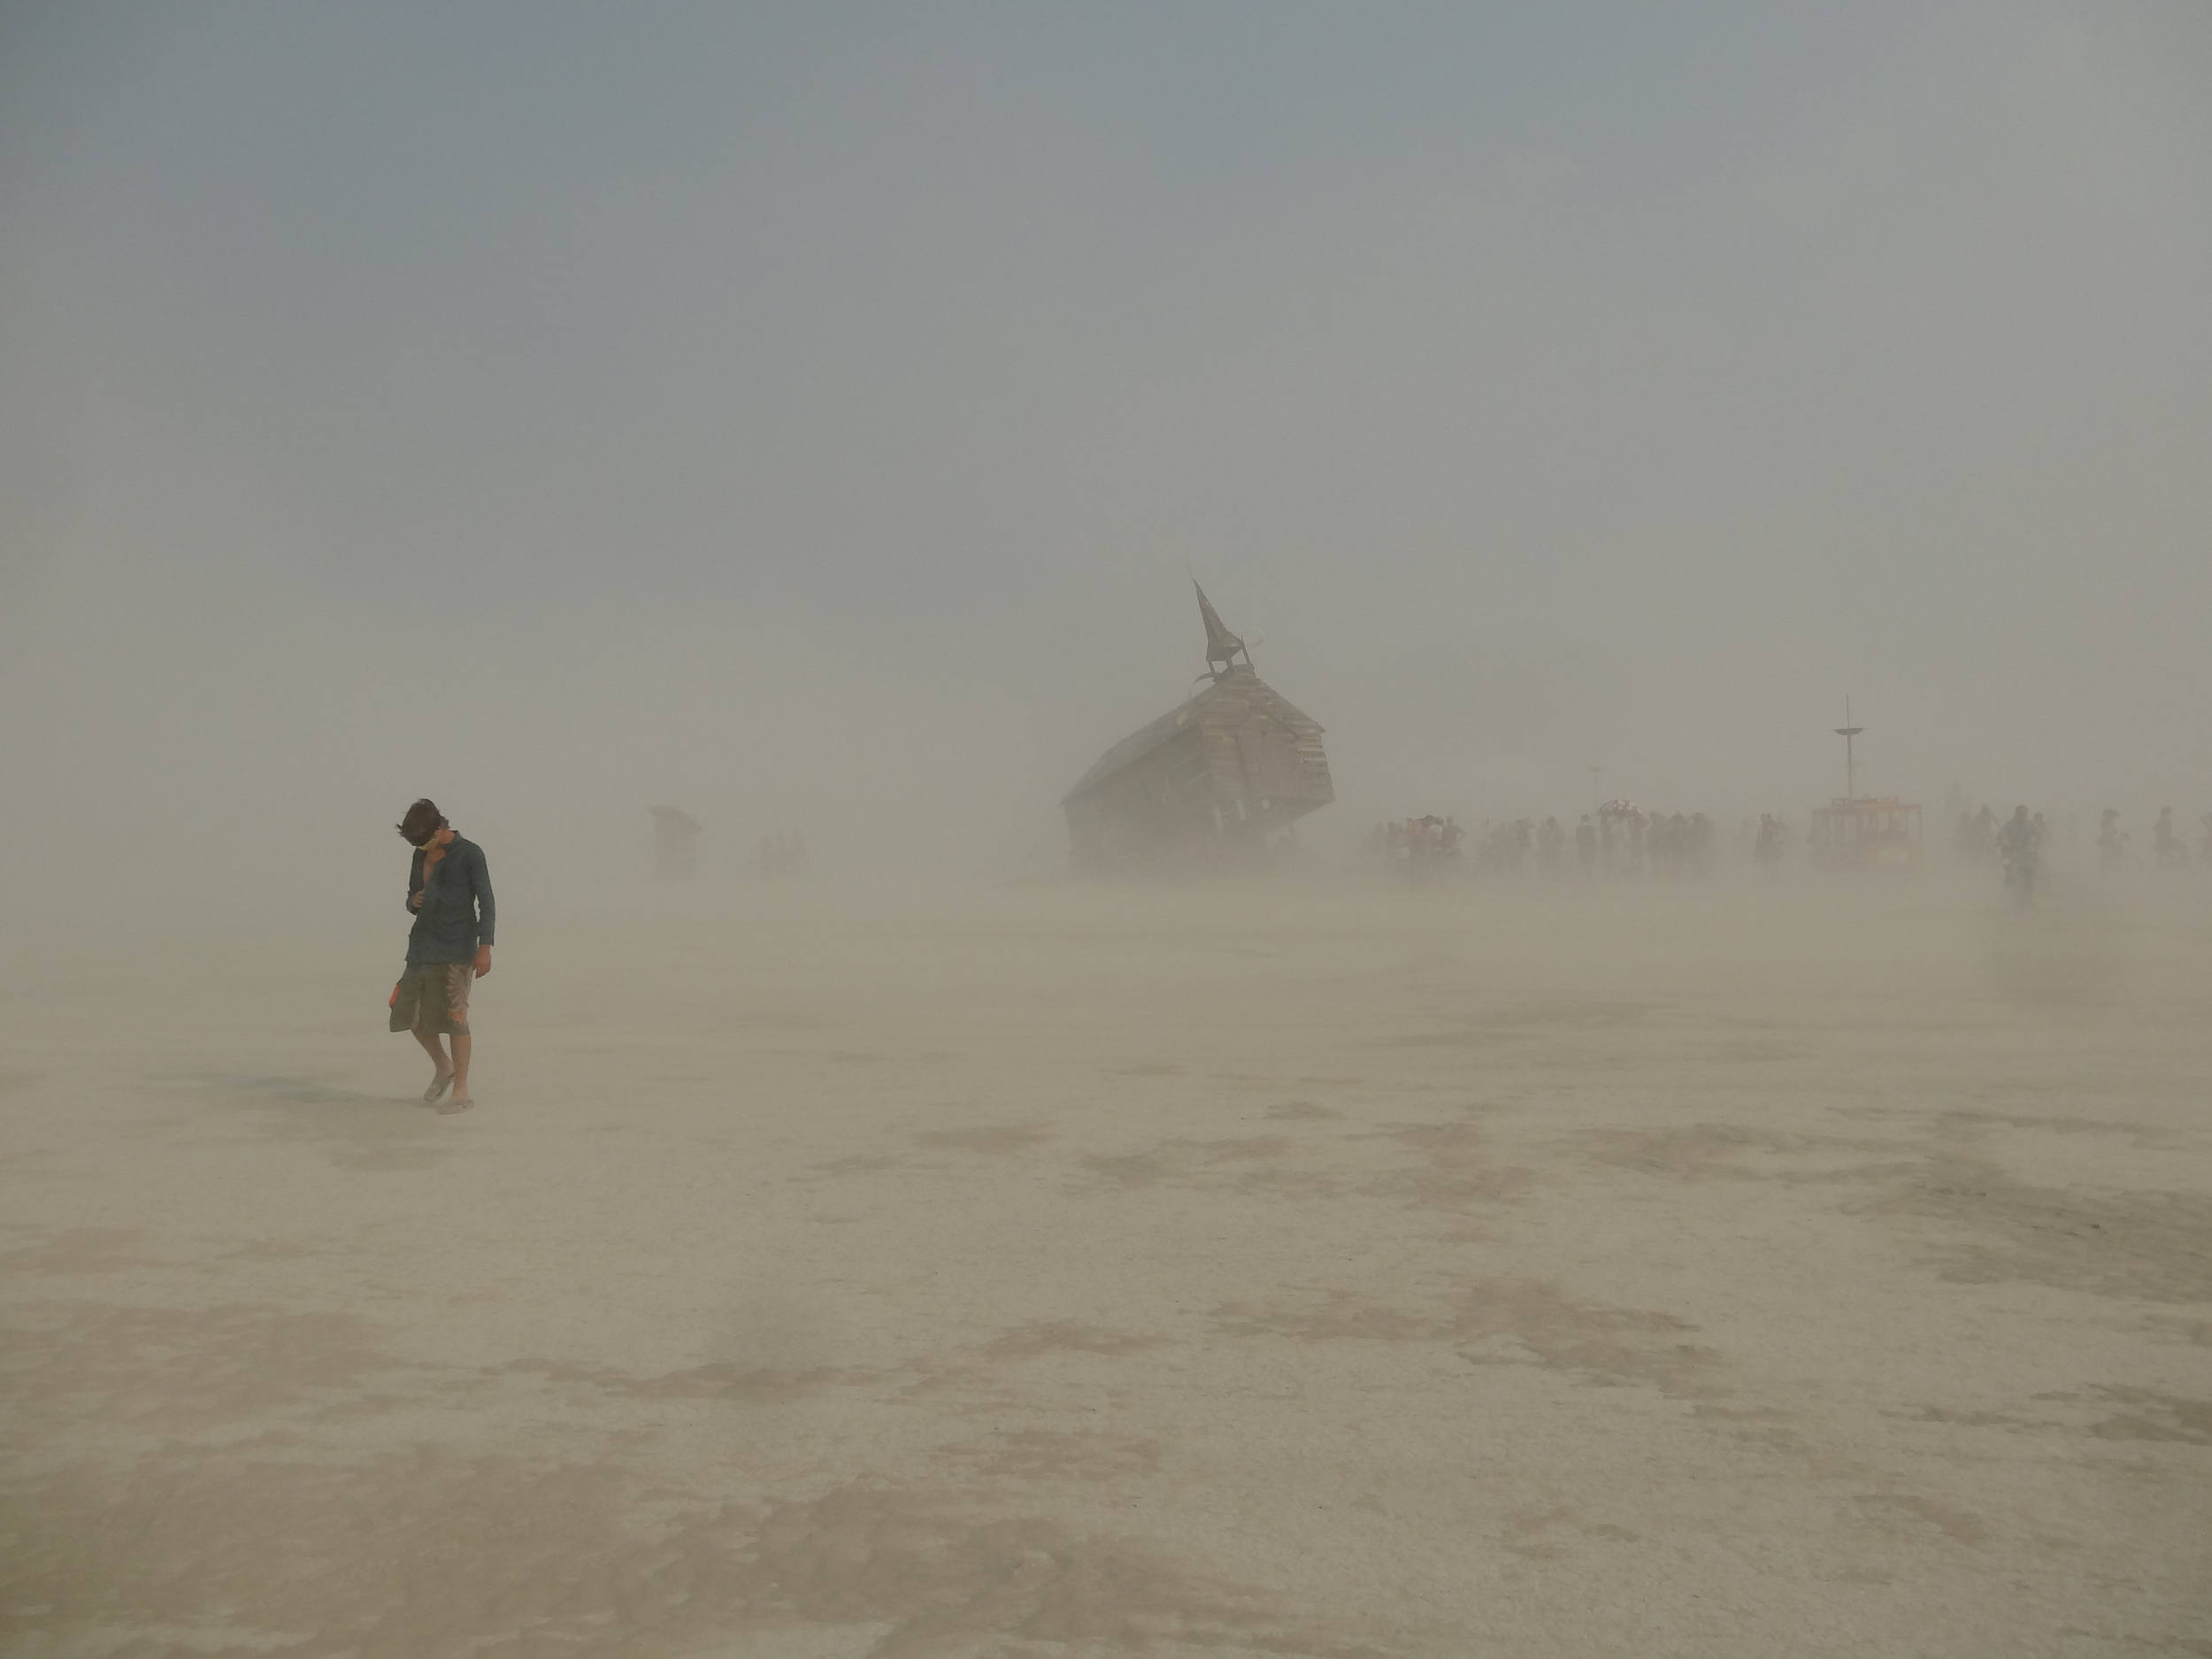 A dust storm arises in the mid morning. All burners stay prepared for such events, and treat this as part of the experience. There is an eerie quiet and solitude that overcomes you when the dust storm hits. It is somewhat like being caught in a blizzard, yet clearly quite different.